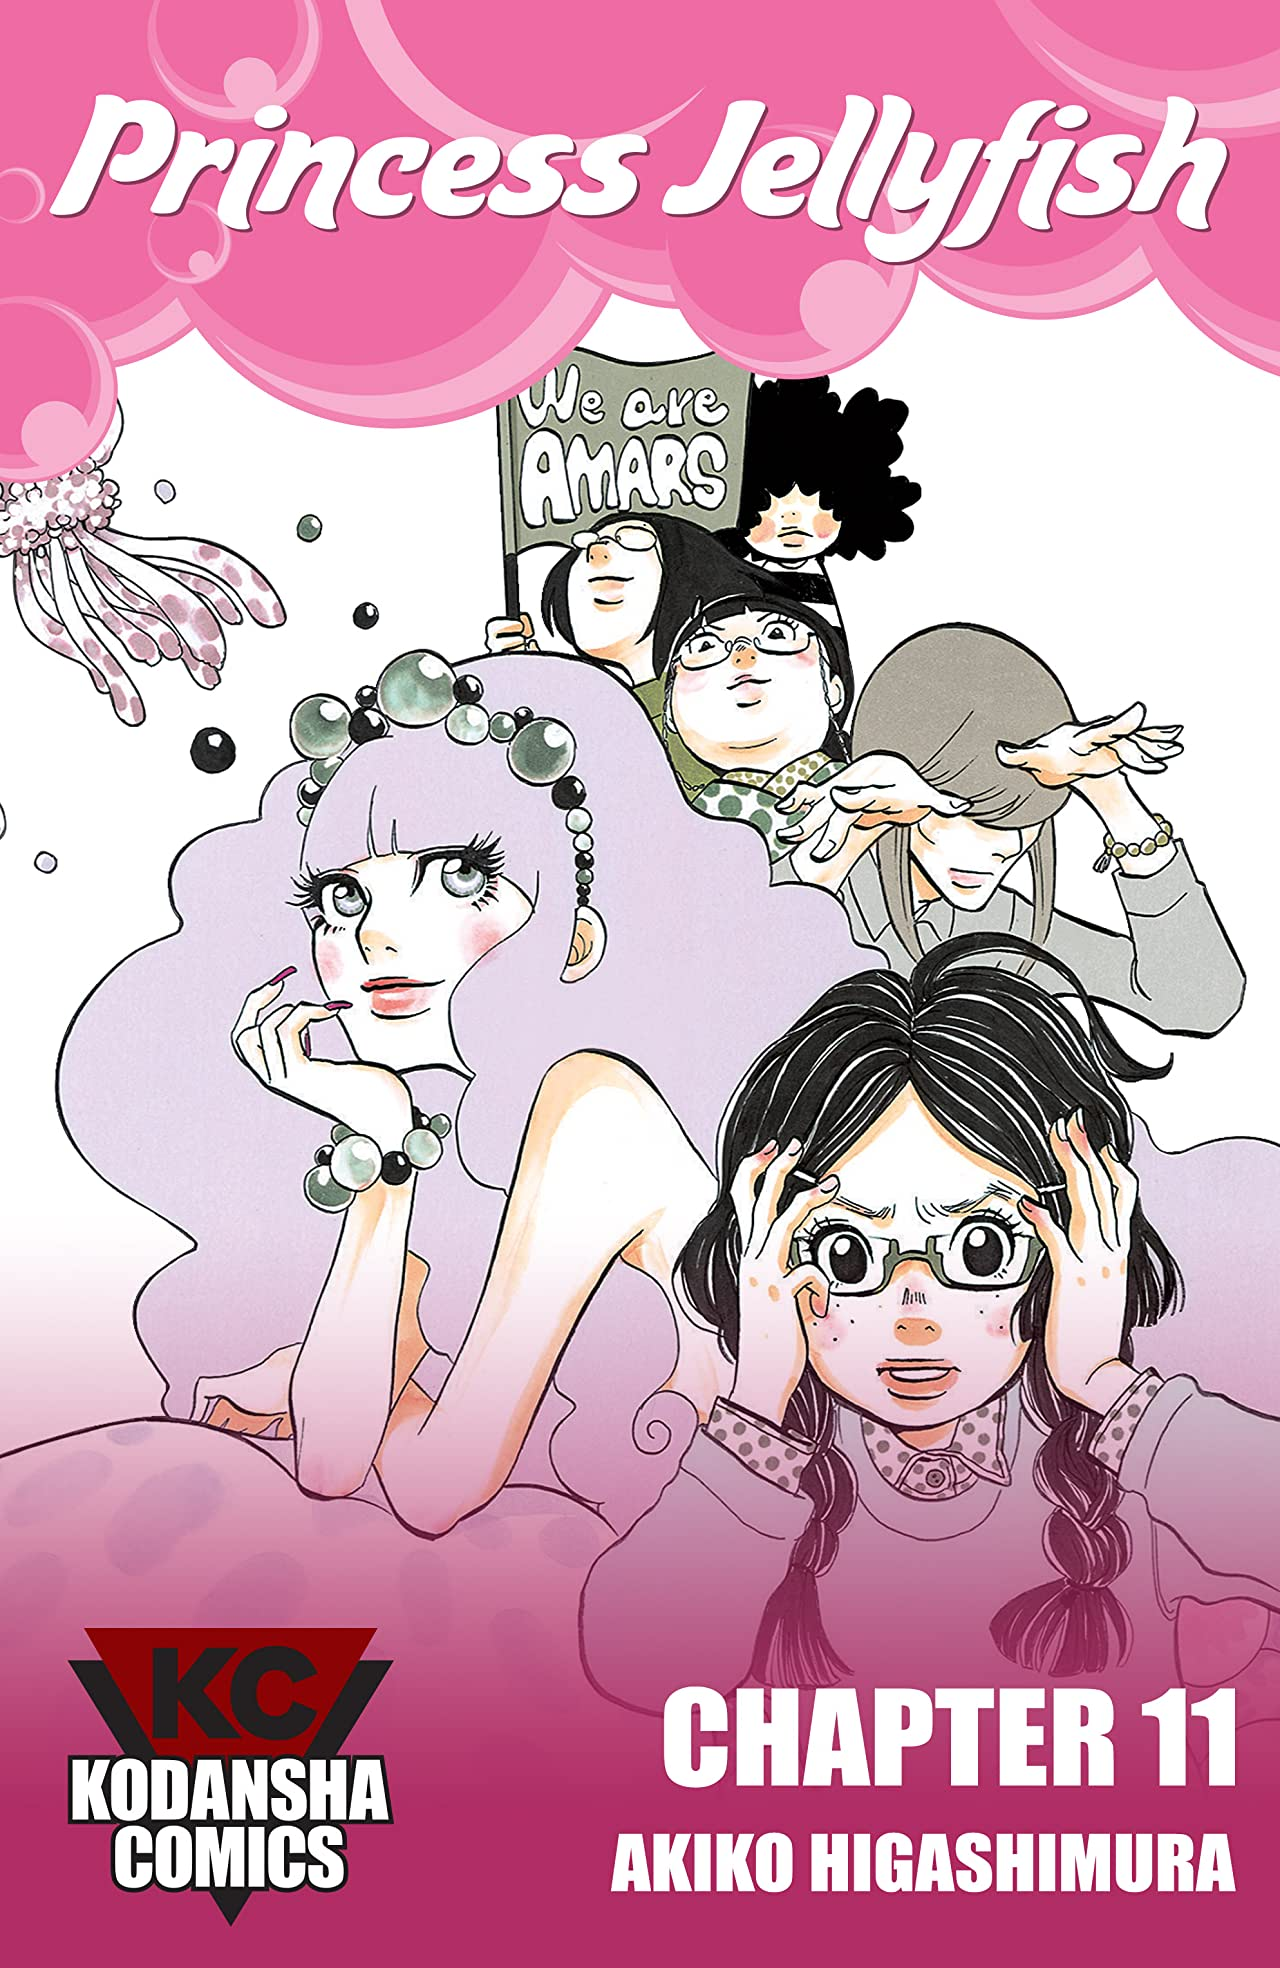 Princess Jellyfish #11